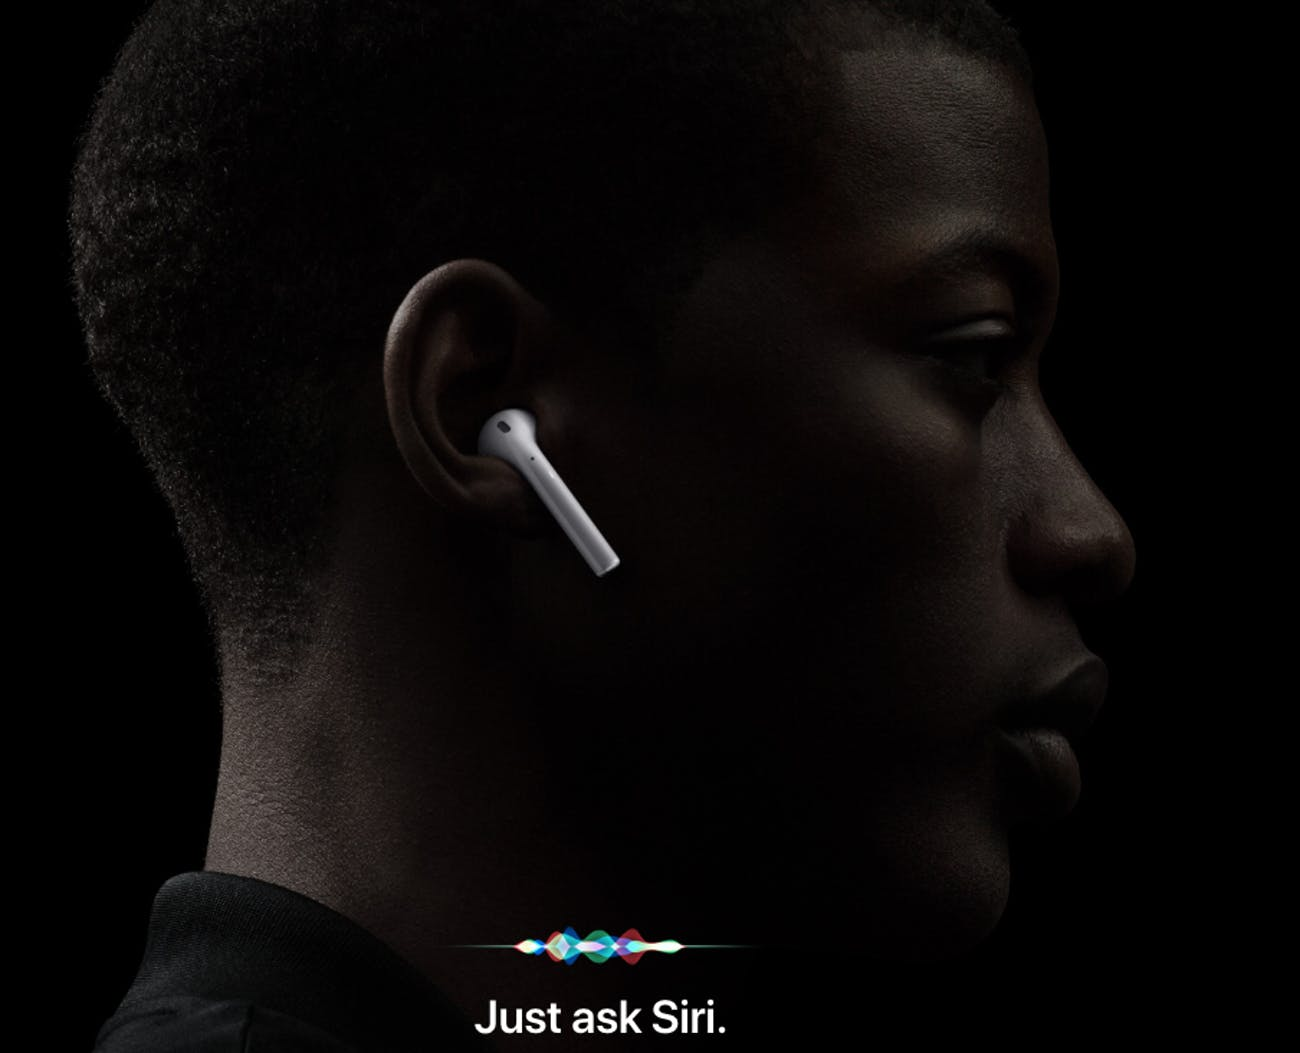 apple airpods update hey siri support